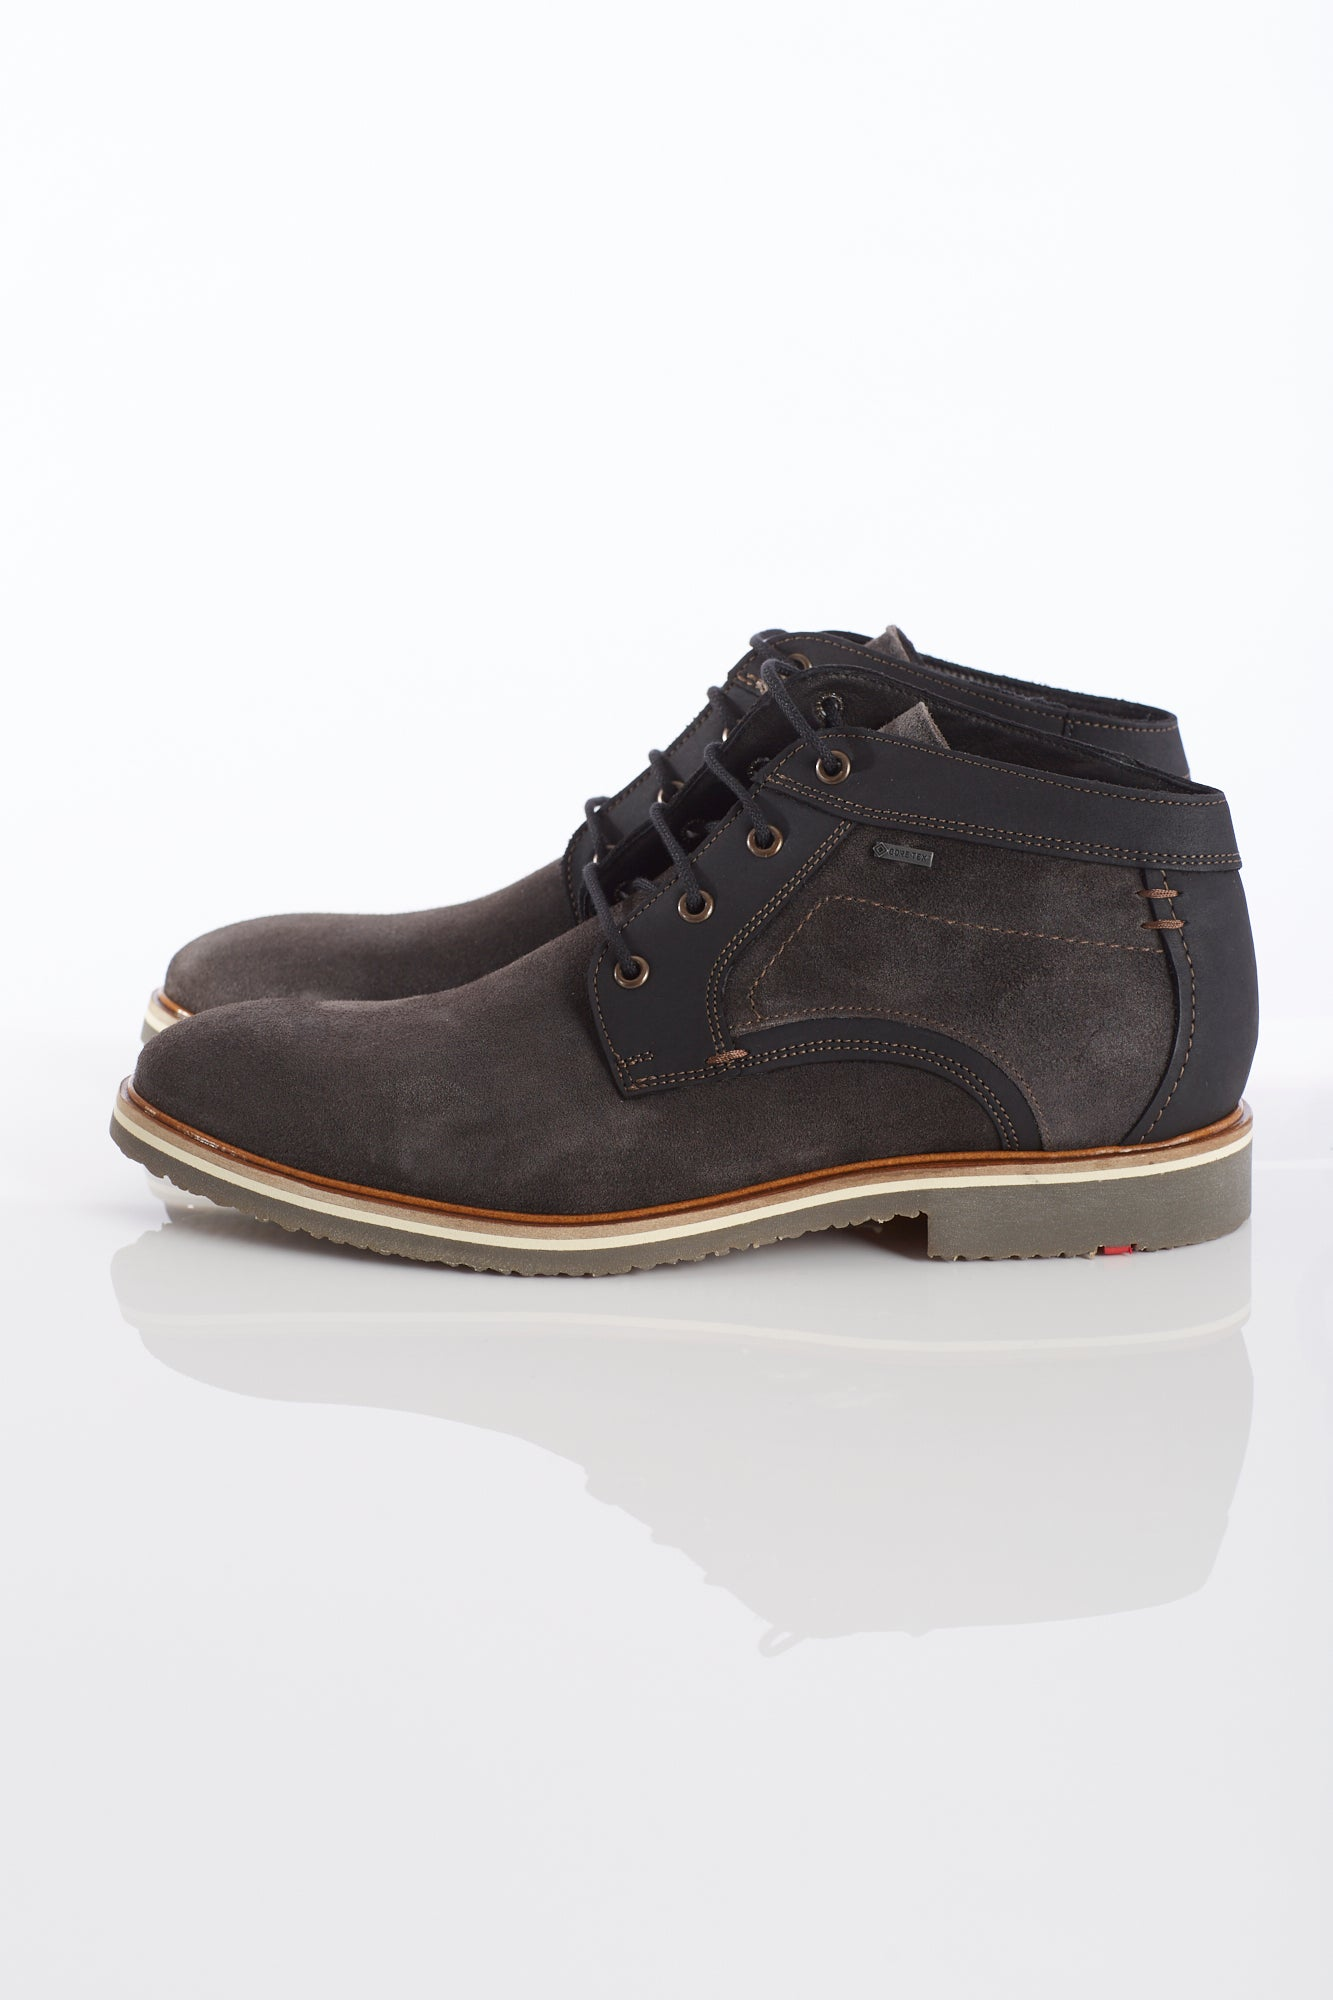 Lloyd 'Valentin' Goretex Grey Chukka Boot Side